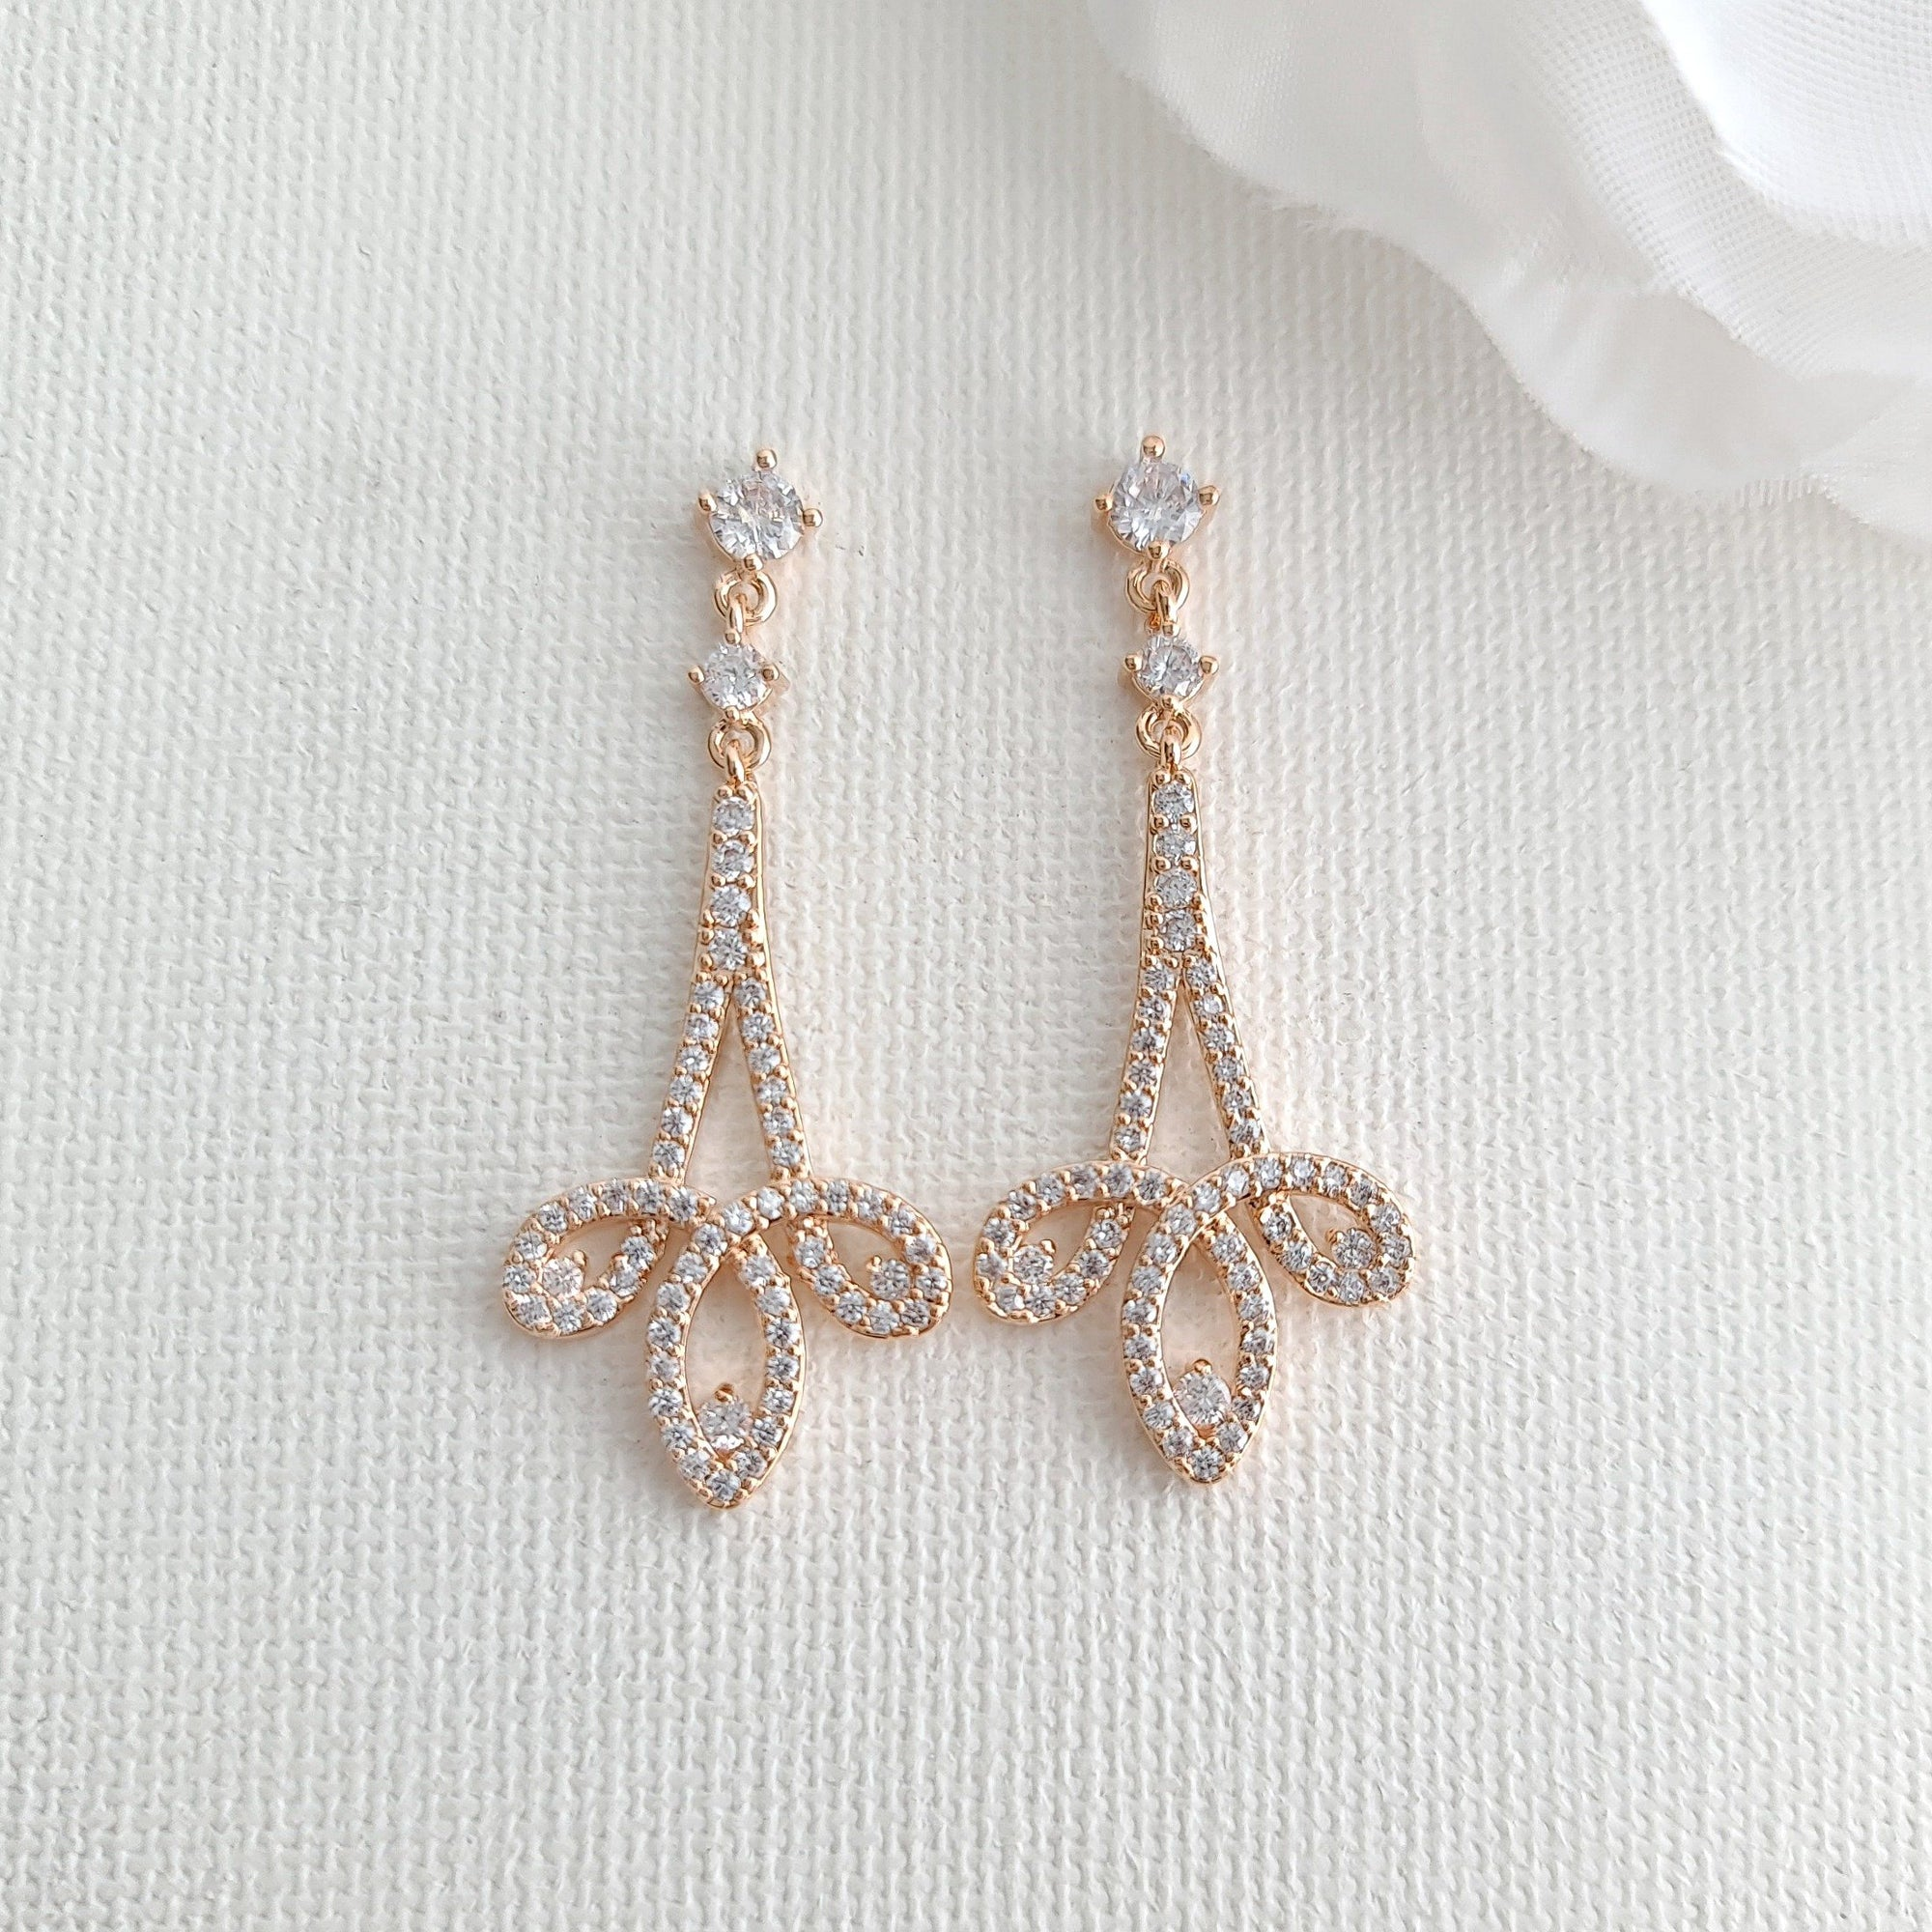 Rose Gold Cubic Zirconia Earrings-Allison - PoetryDesigns